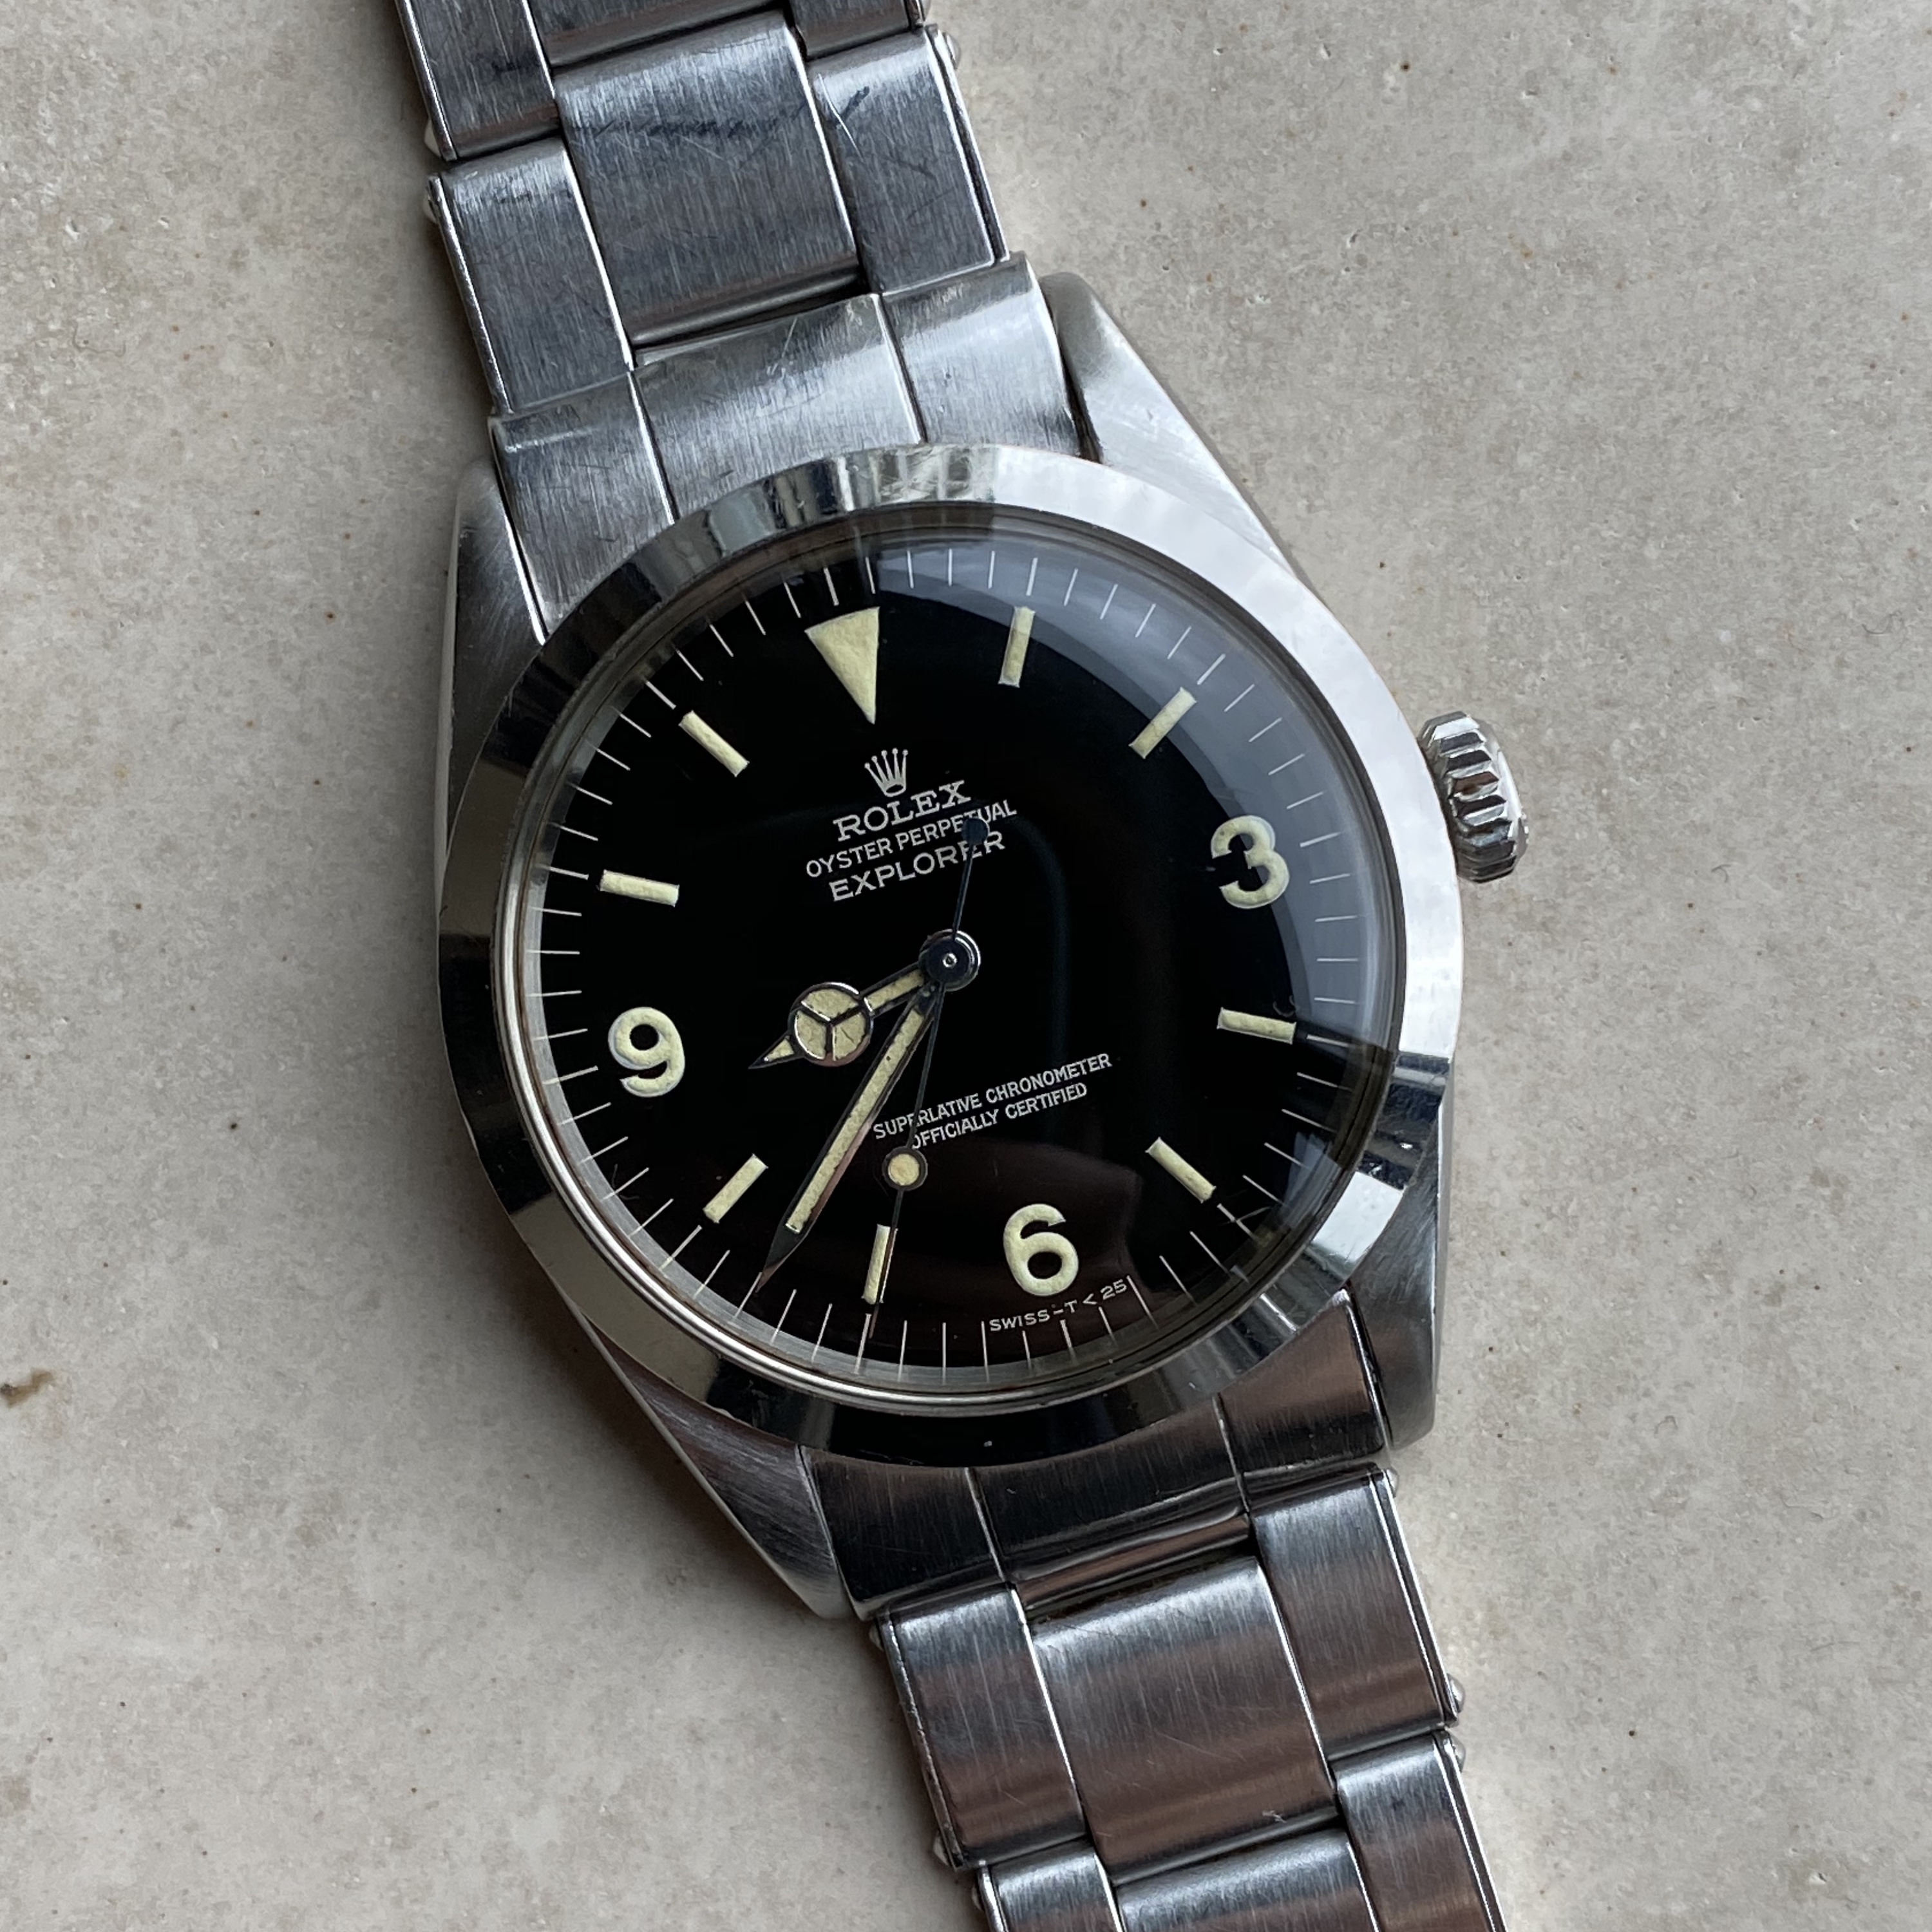 Rolex Ref 1016 gilt EX1 in mint circa 1966 #Status Sold